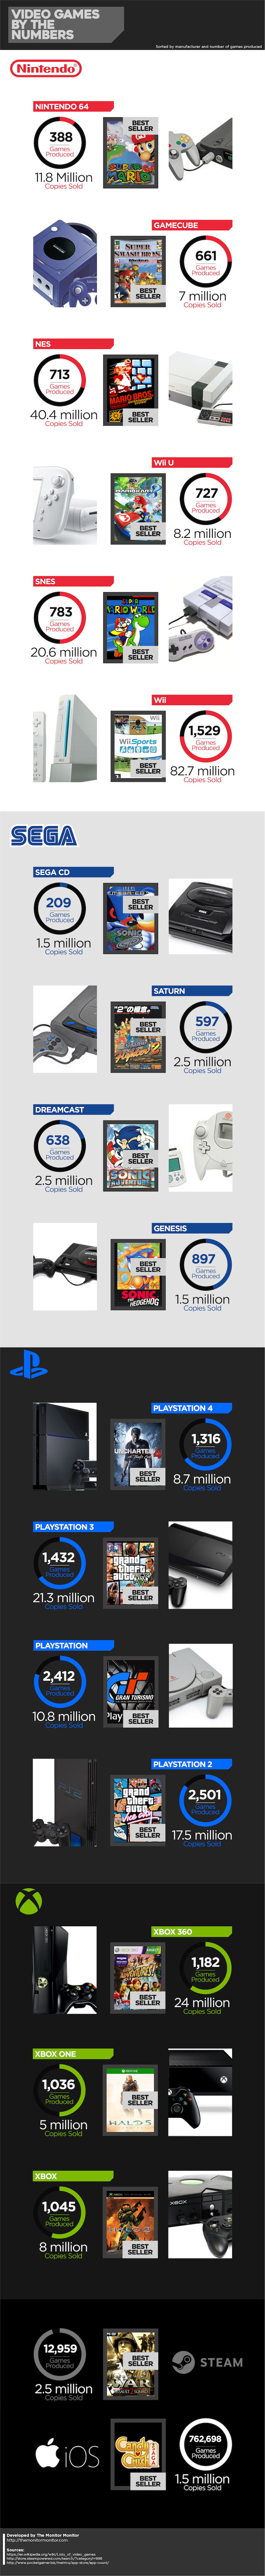 Video Game Console History